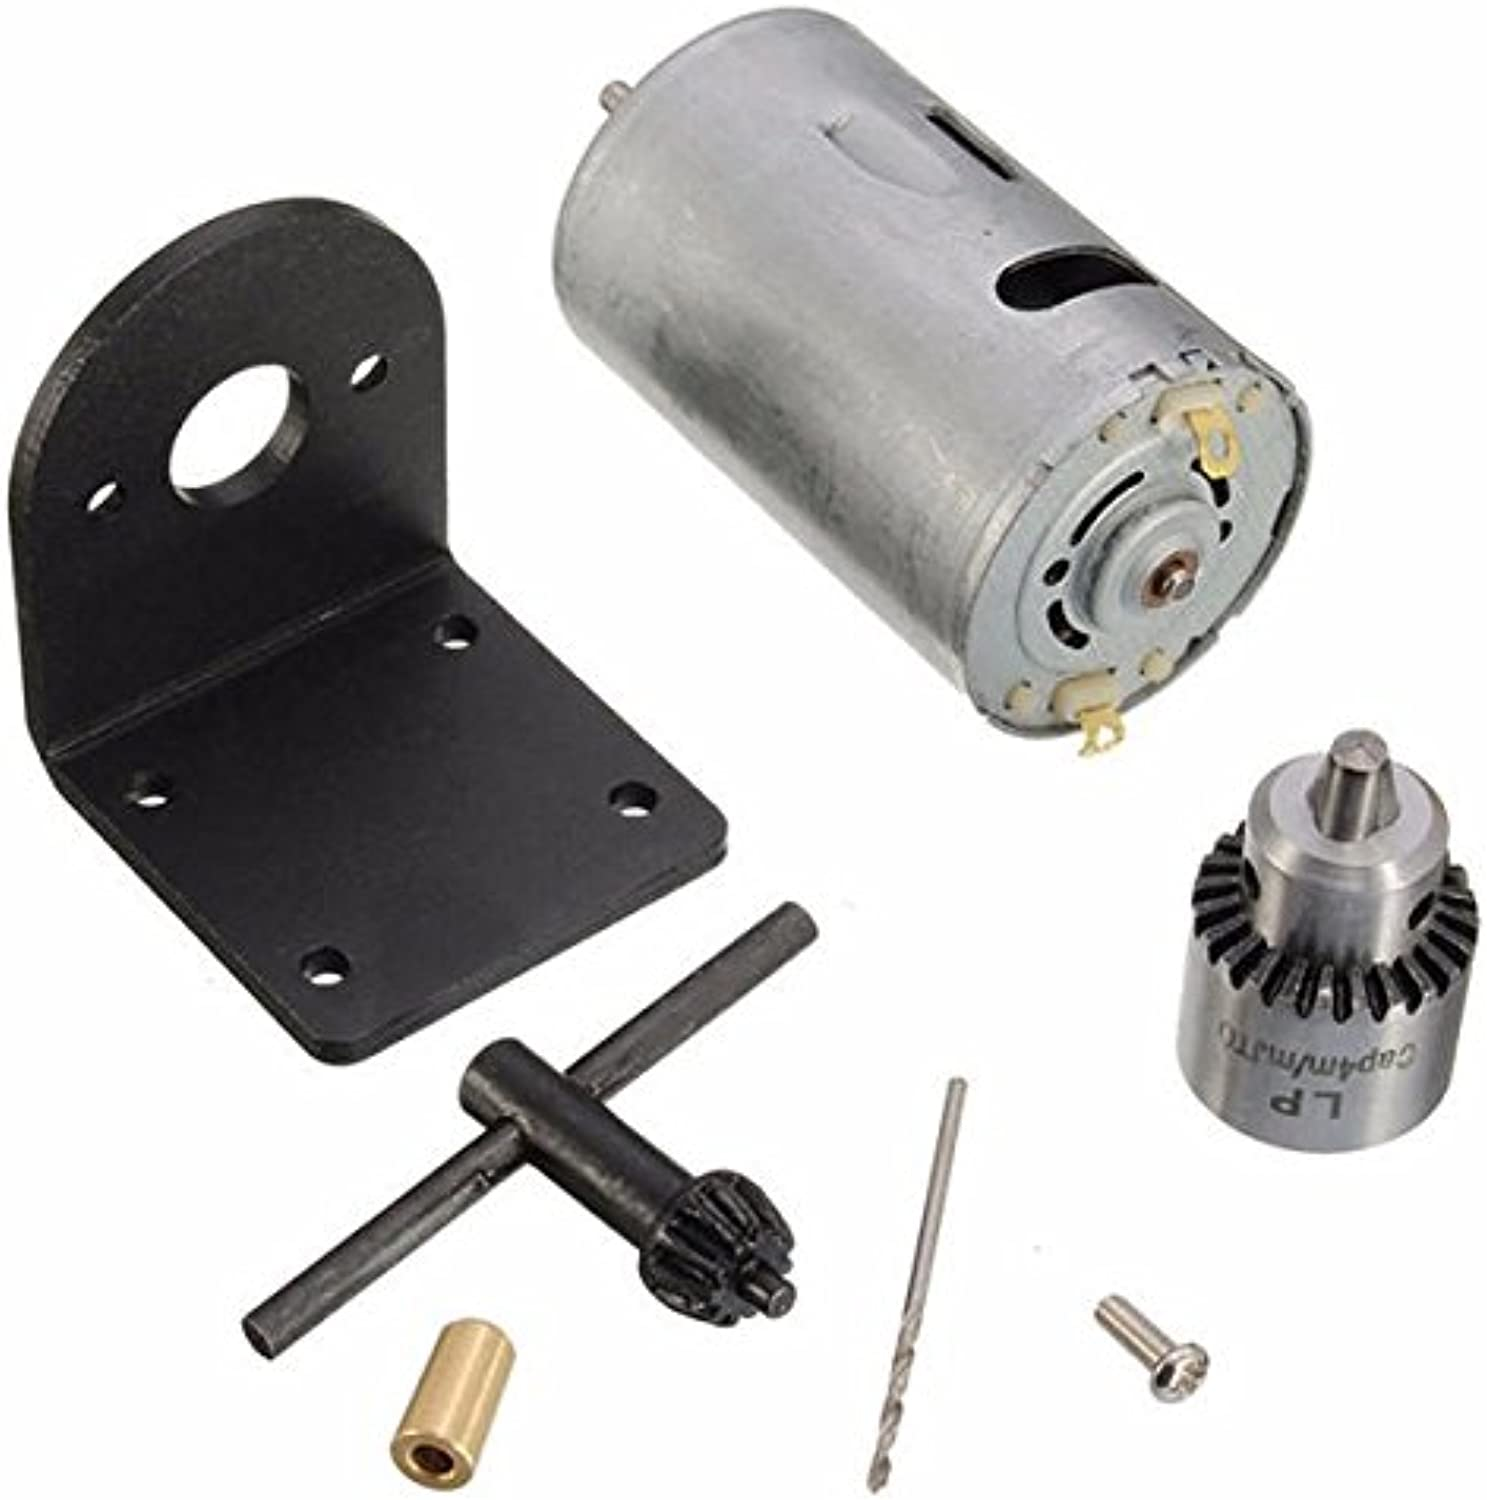 1224V Lathe Press Motor with Drill Chuck and Mounting Bracket Motor  Mechanical Parts Motor  1 x Motor, 1 x JT0 Drill Chuck, 1 x Mount for The Motor, 1 x Drill bits